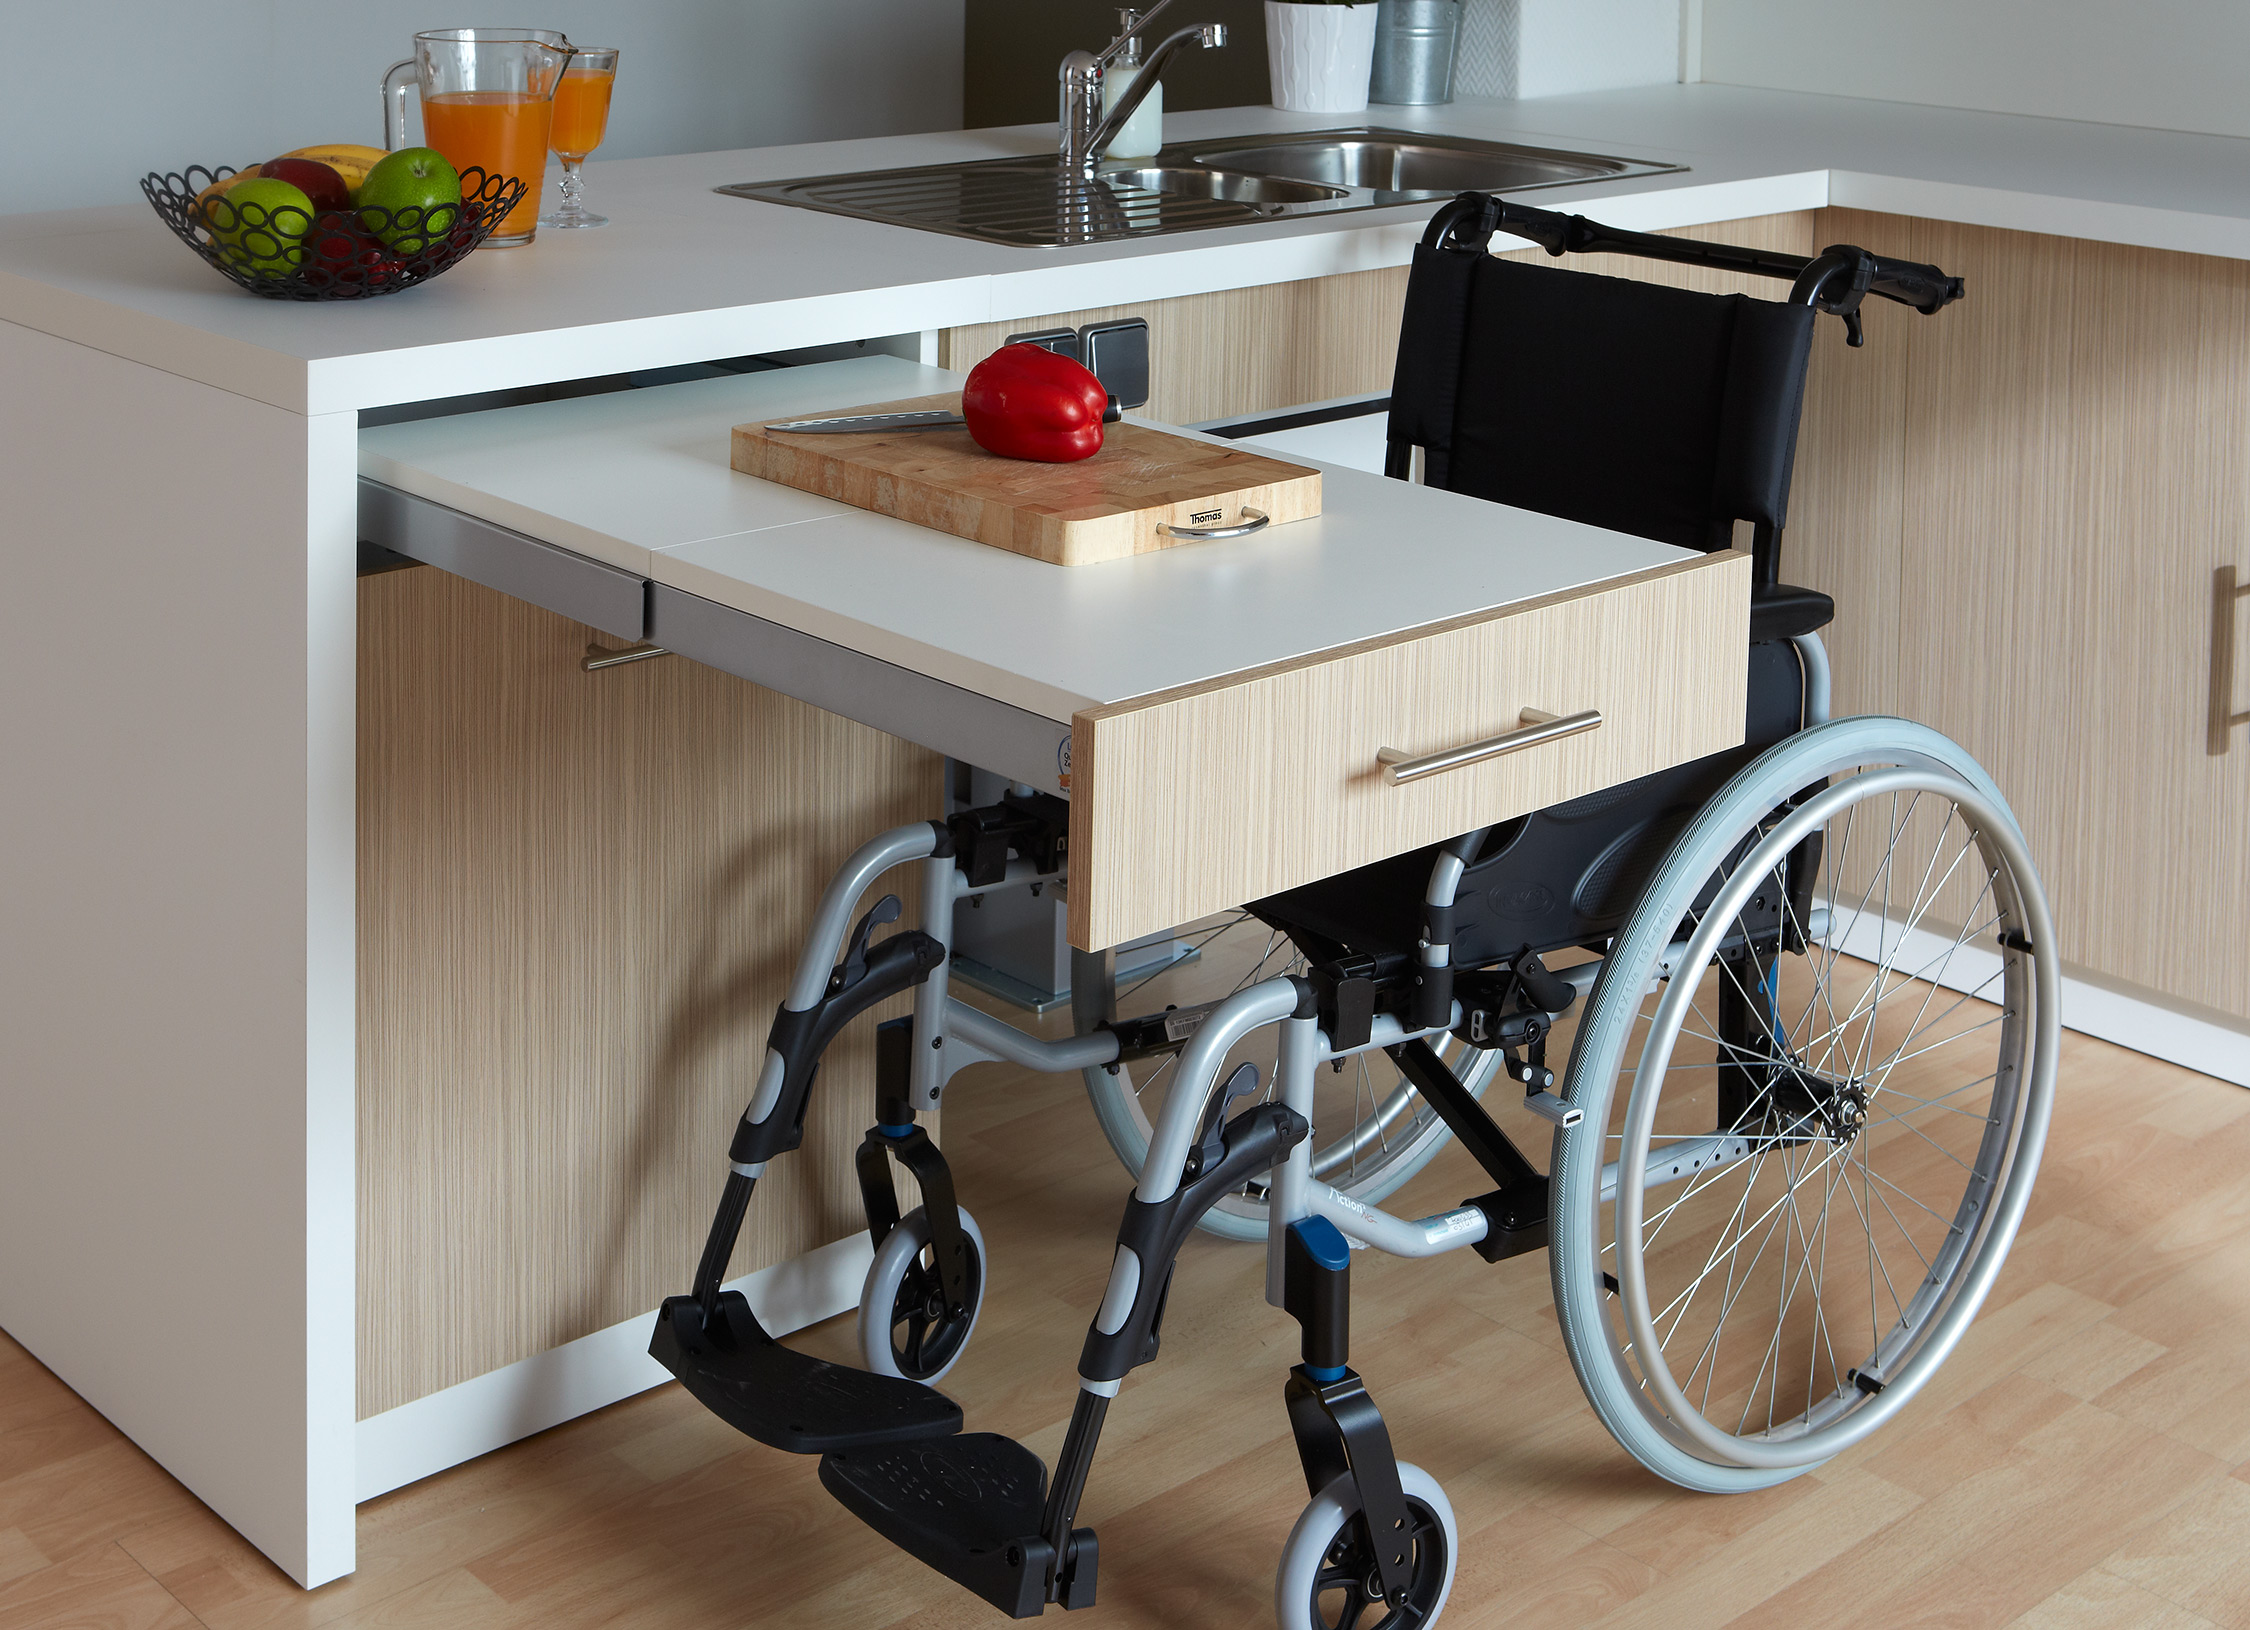 Cuisine adapt e pmr avec modulhome for Table de cuisine escamotable